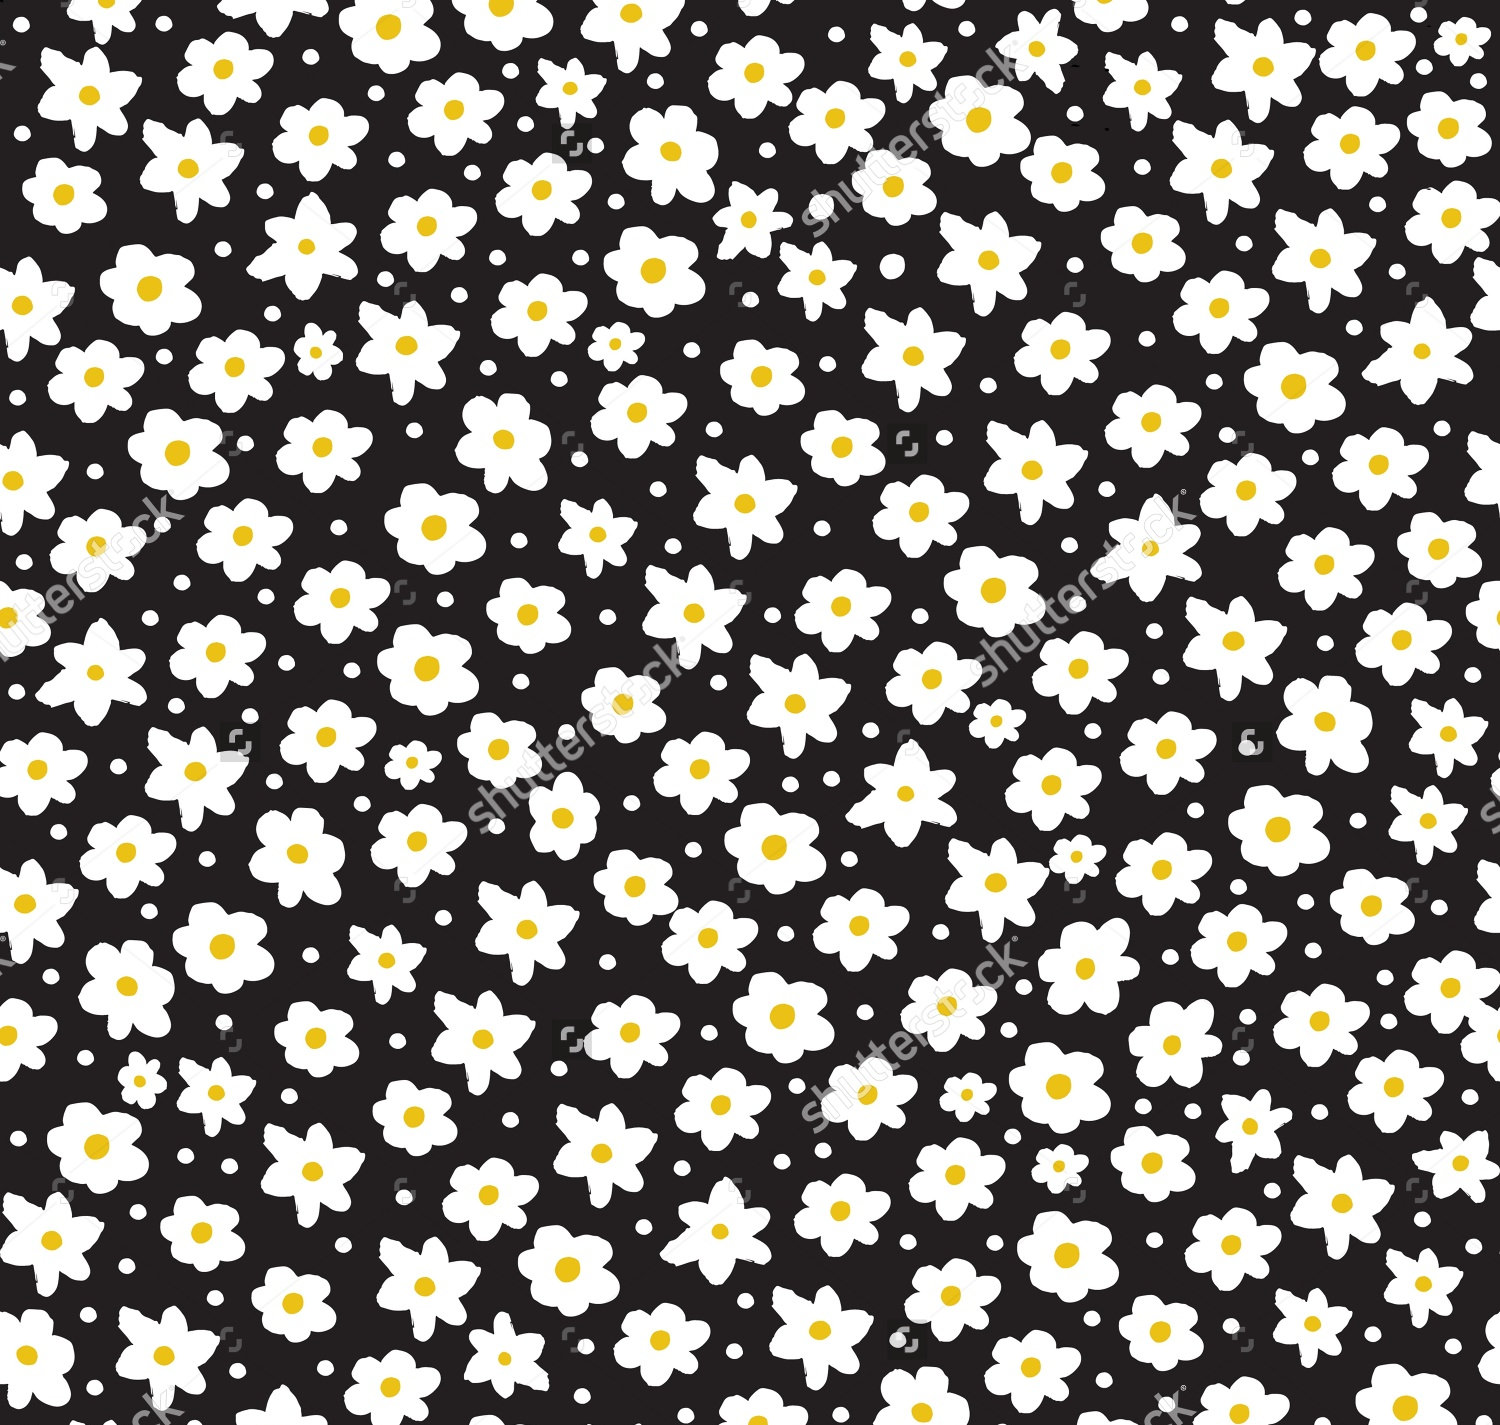 Daisy pattern wallpaper - photo#5